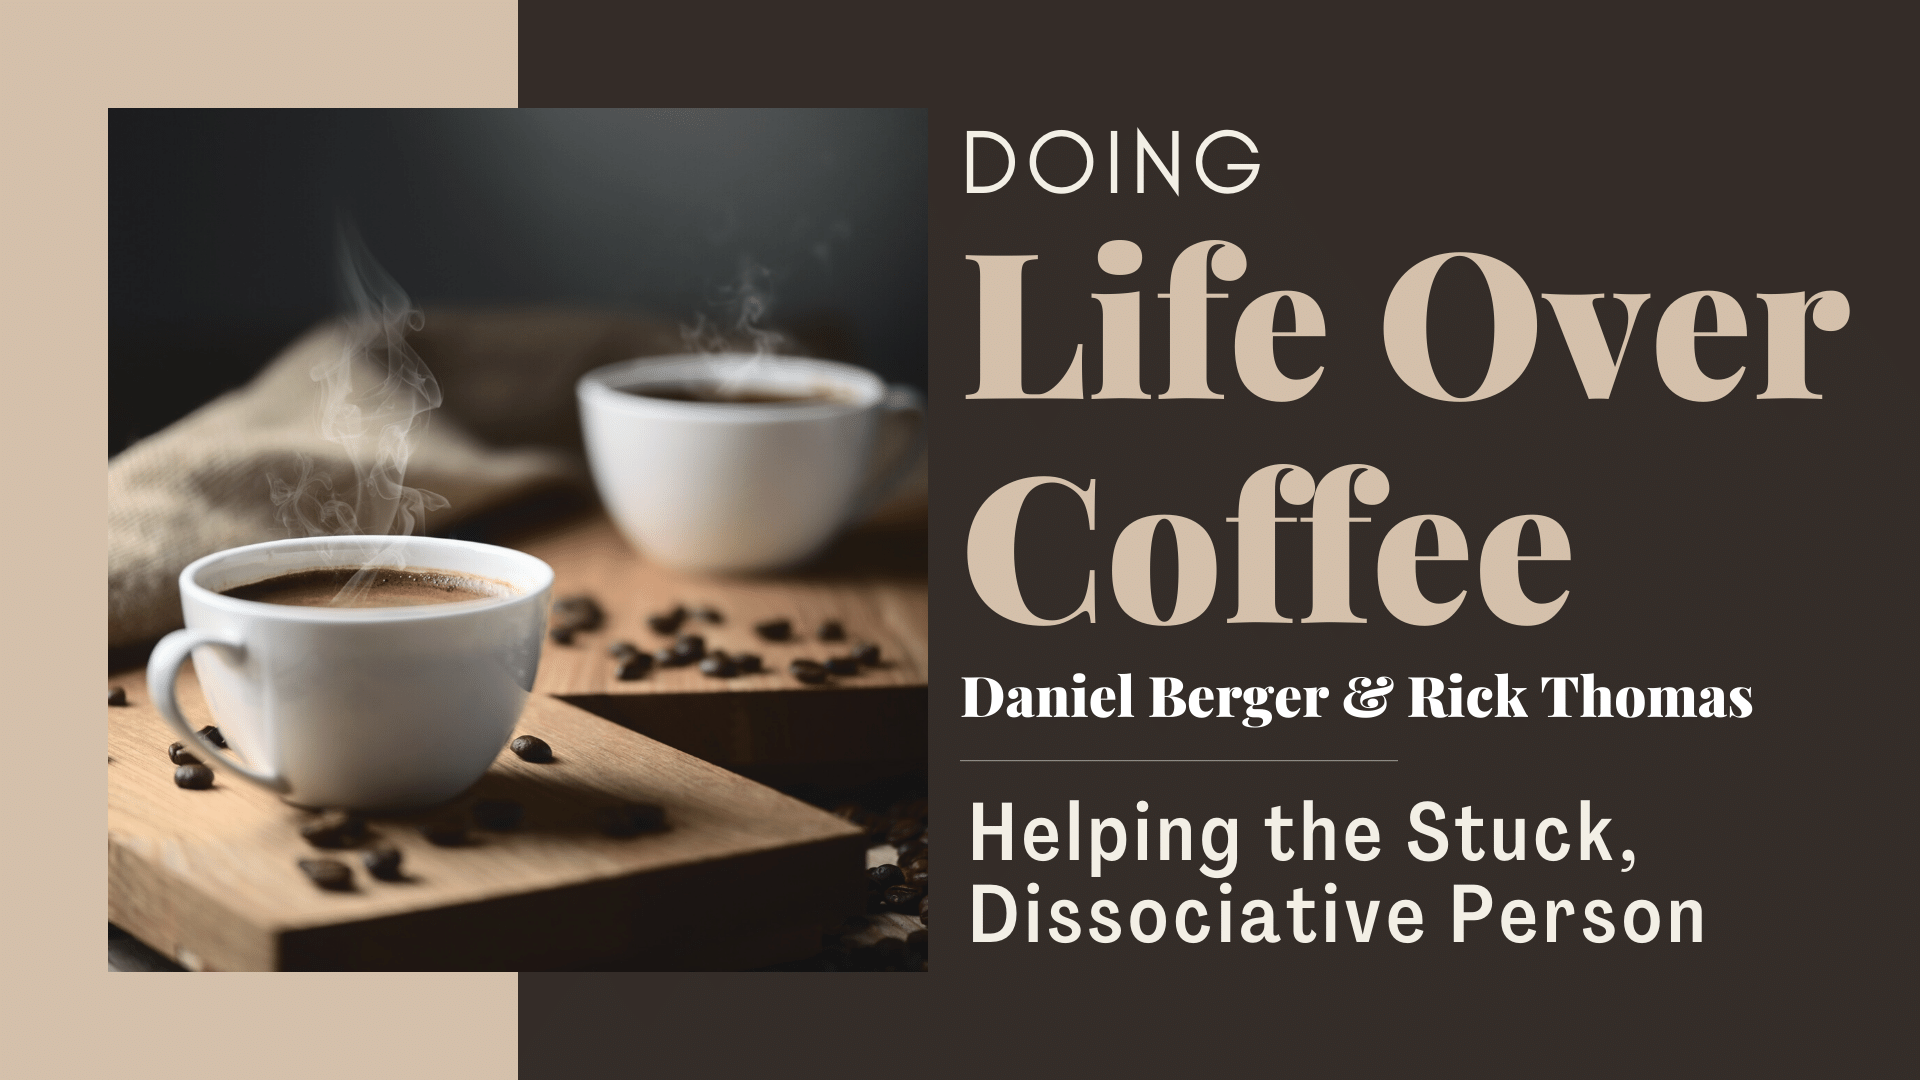 Helping the Stuck, Unchanging Dissociative Person